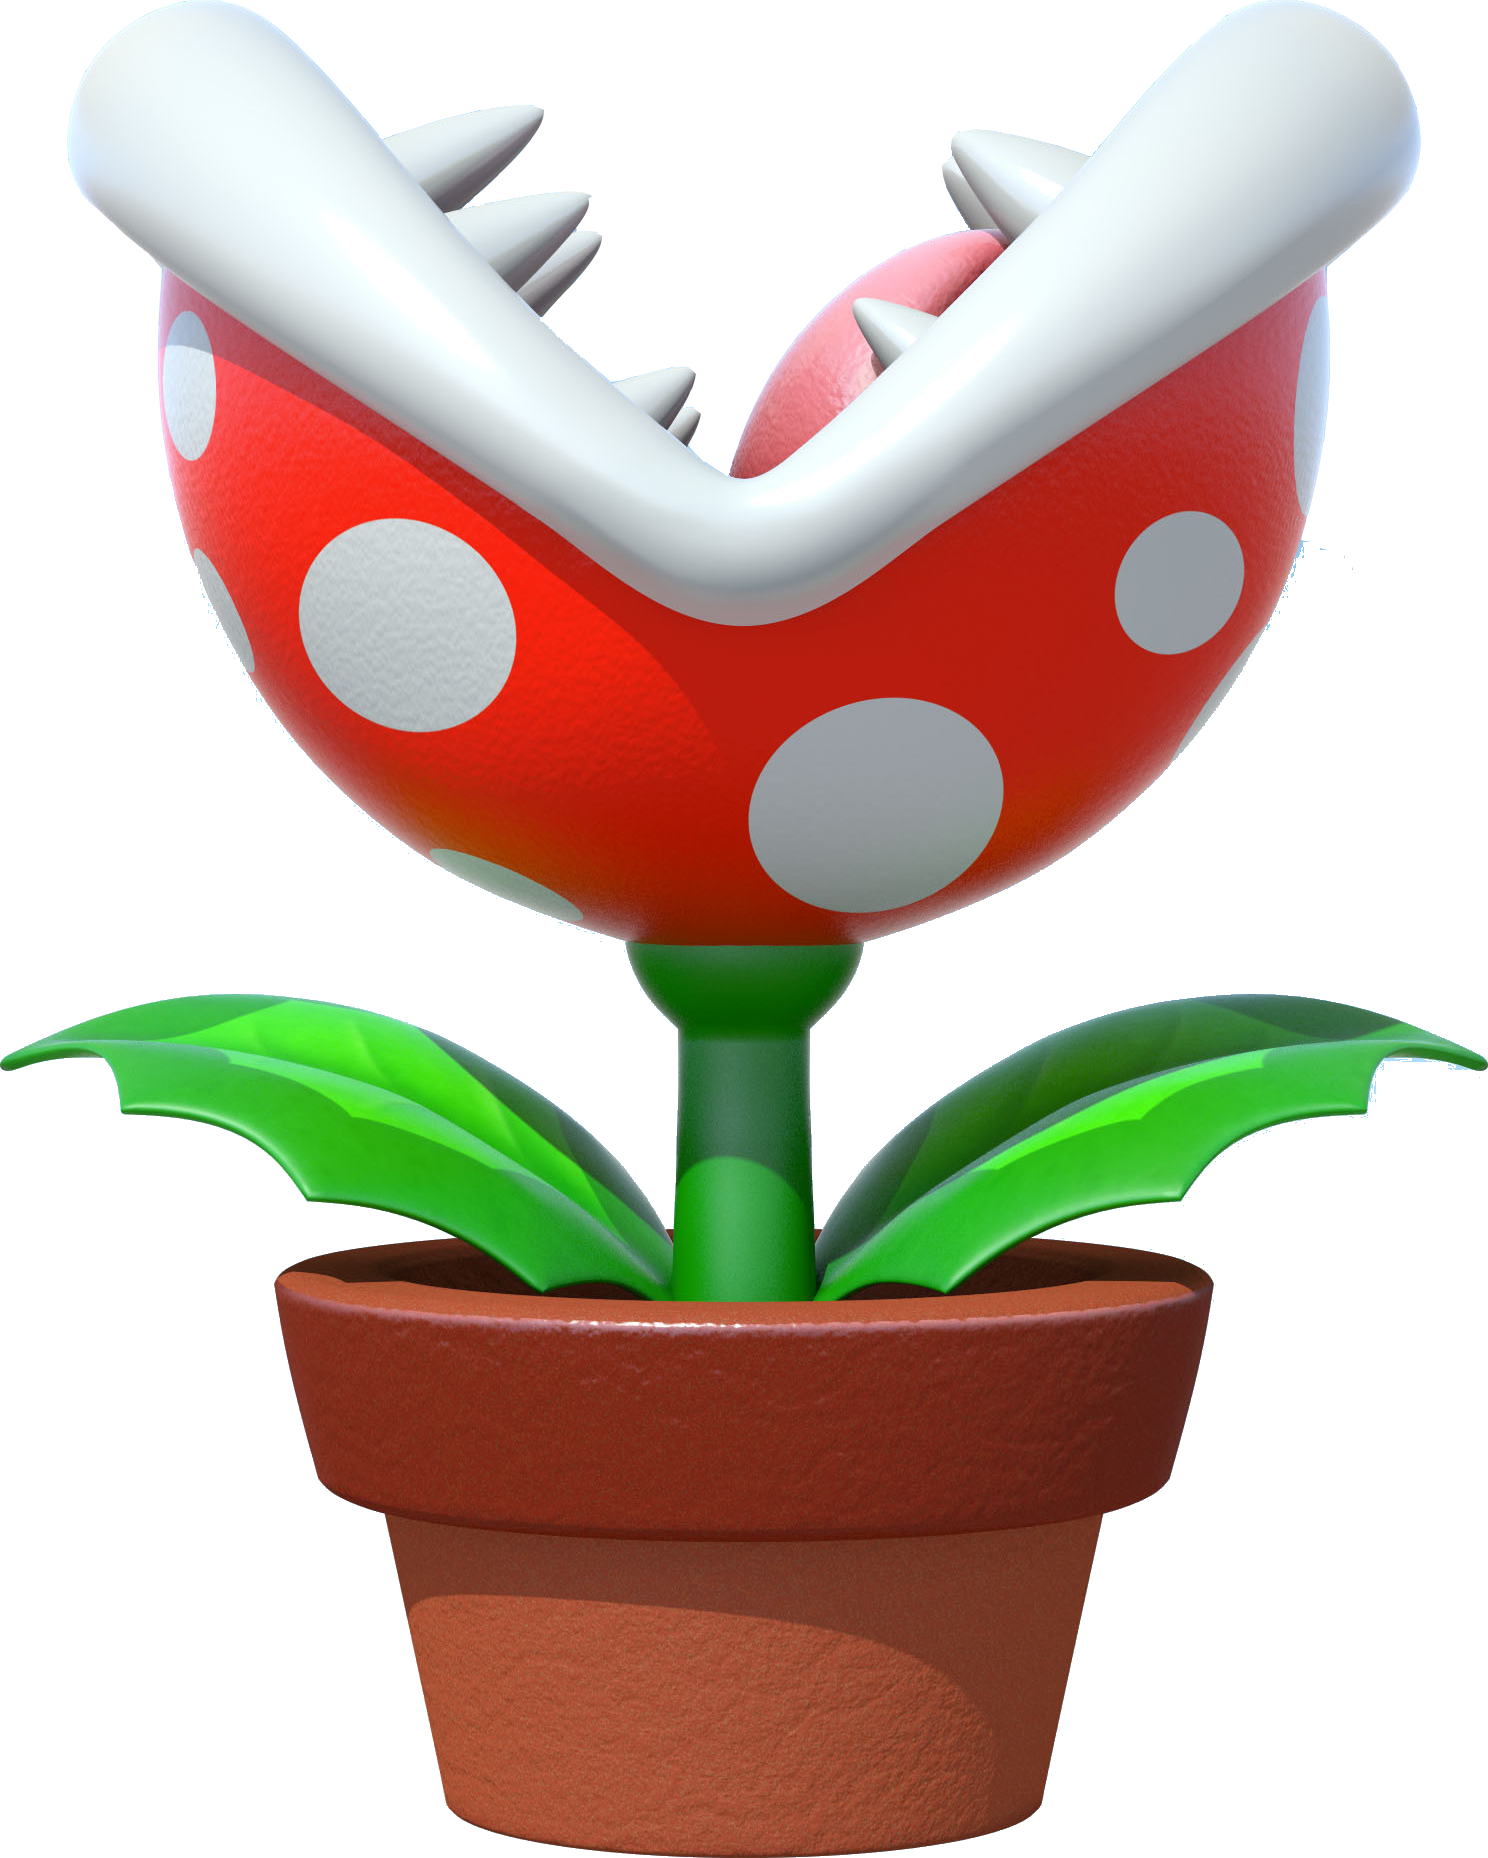 Mario kart 8 wii u character item logo misc hd artwork for Plante mario